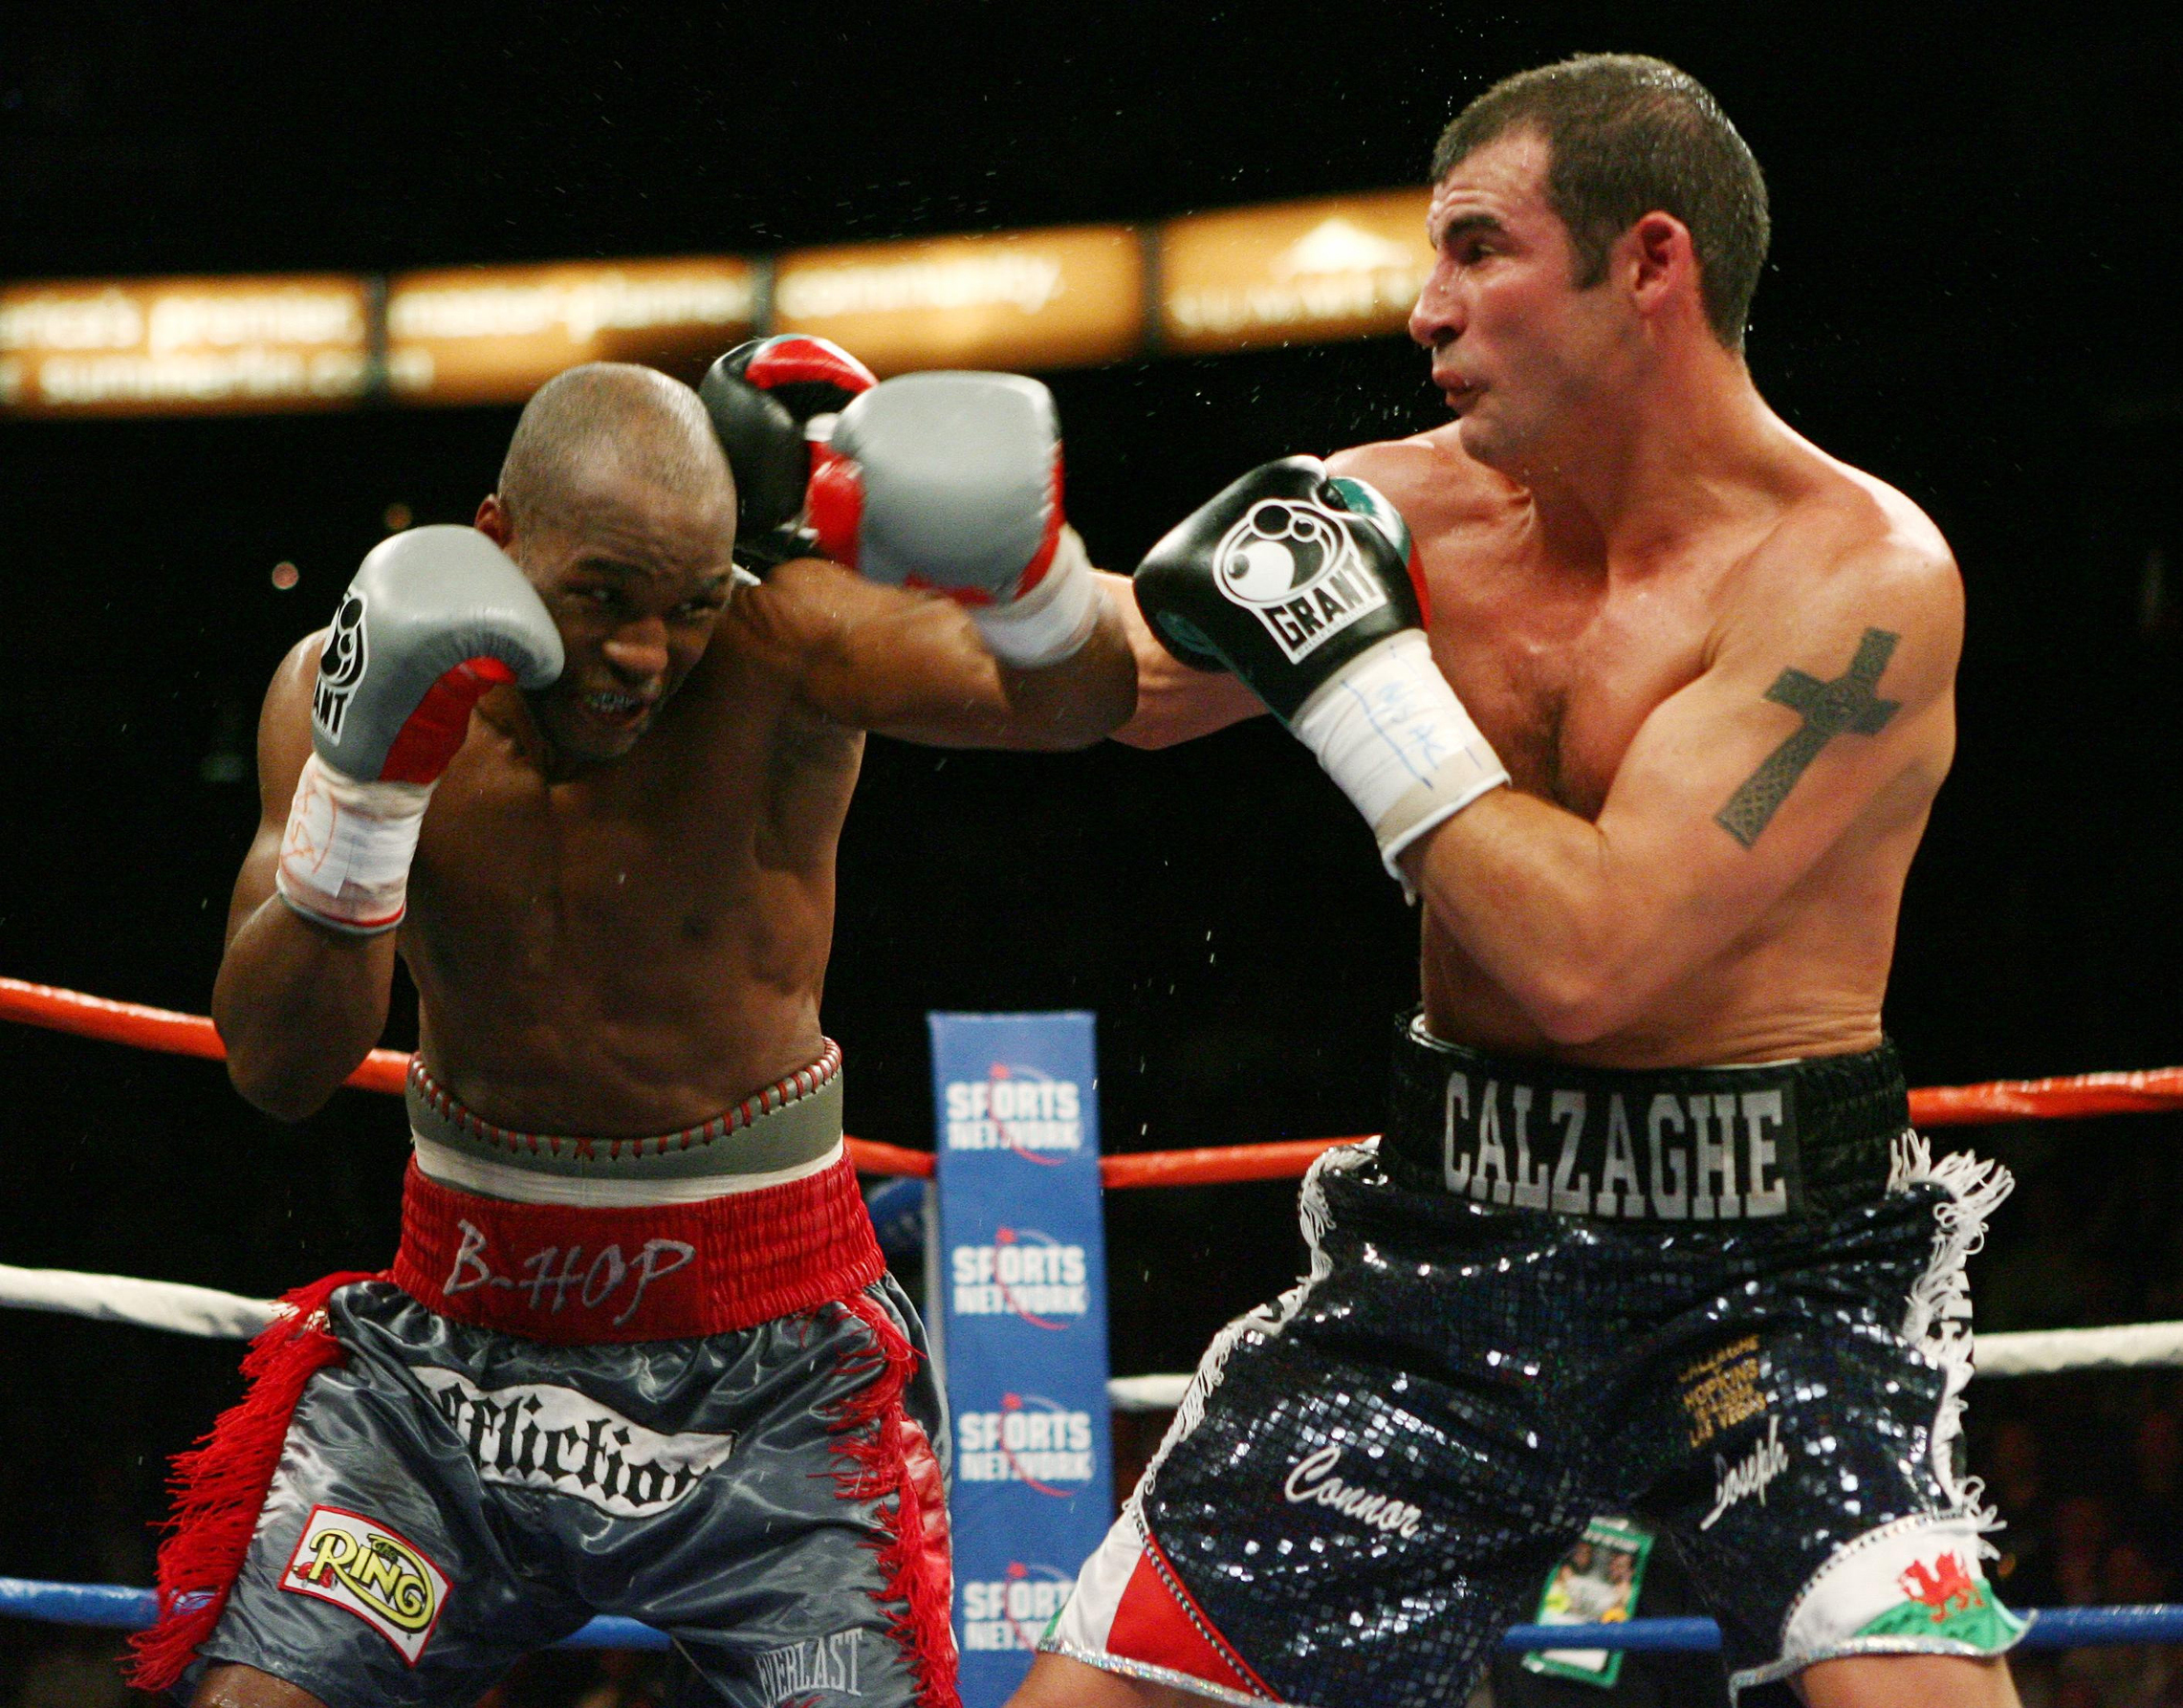 Wales' Joe Calzaghe on top as he exchanges punches with USA 's Bernard Hopkins during the Light-Heavyweight Title at Thomas & Mack Center, Las Vegas, USA.  PRESS ASSOCIATION Photo. Picture date: Saturday April 19, 2008. See PA story BOXING Las